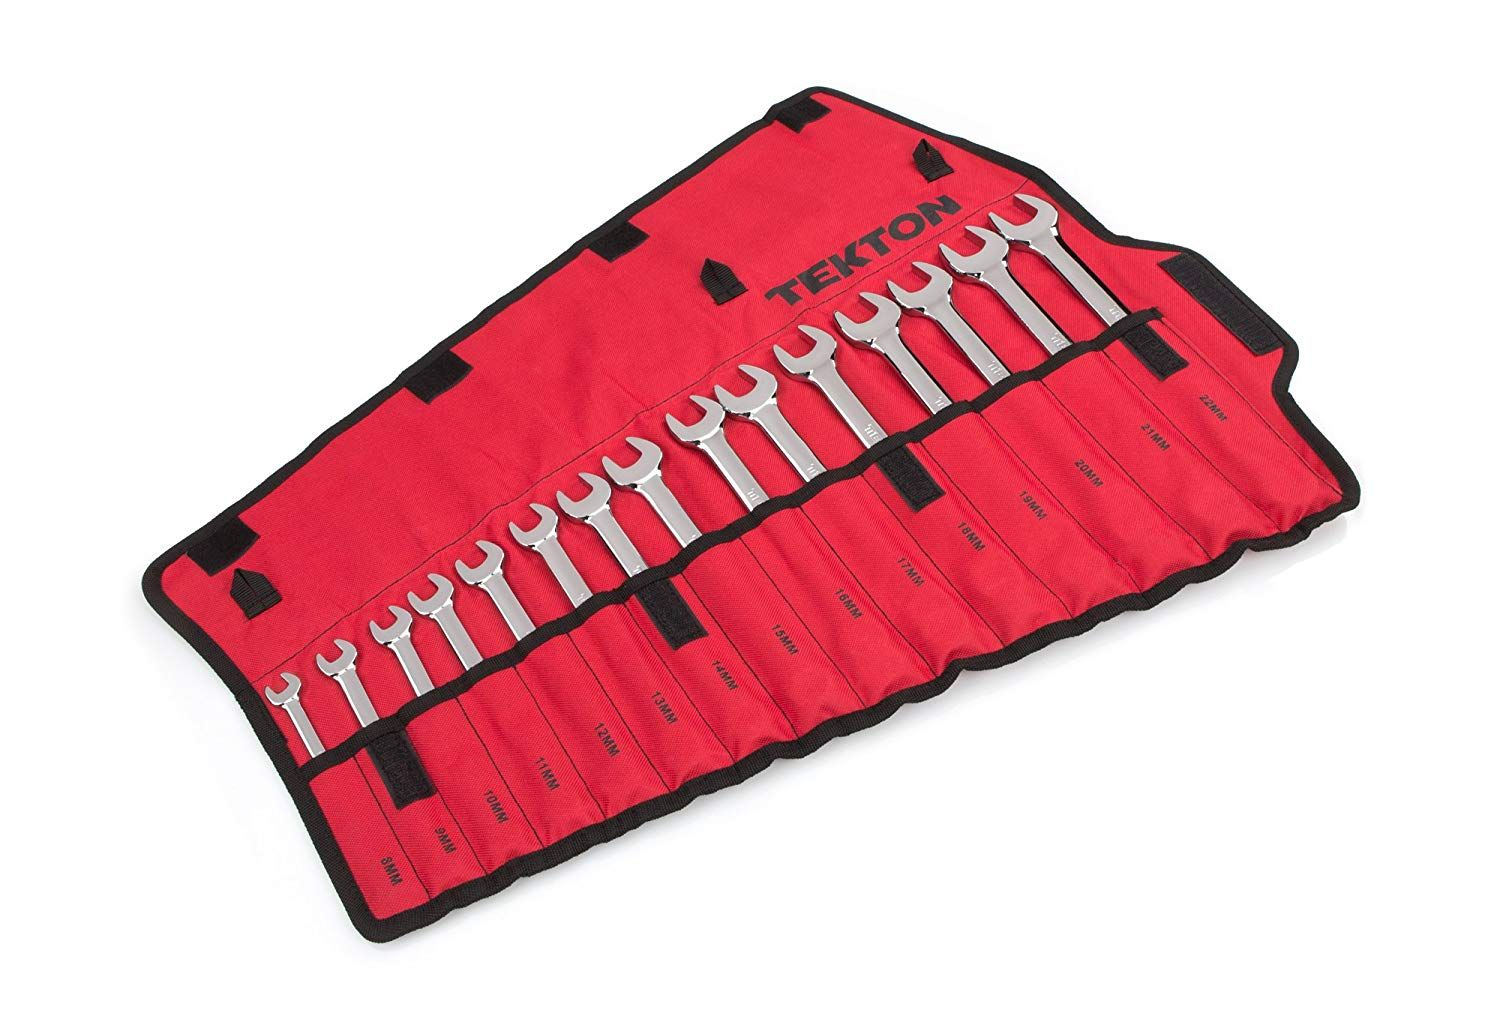 TEKTON Combination Wrench Set with Rollup Storage Pouch